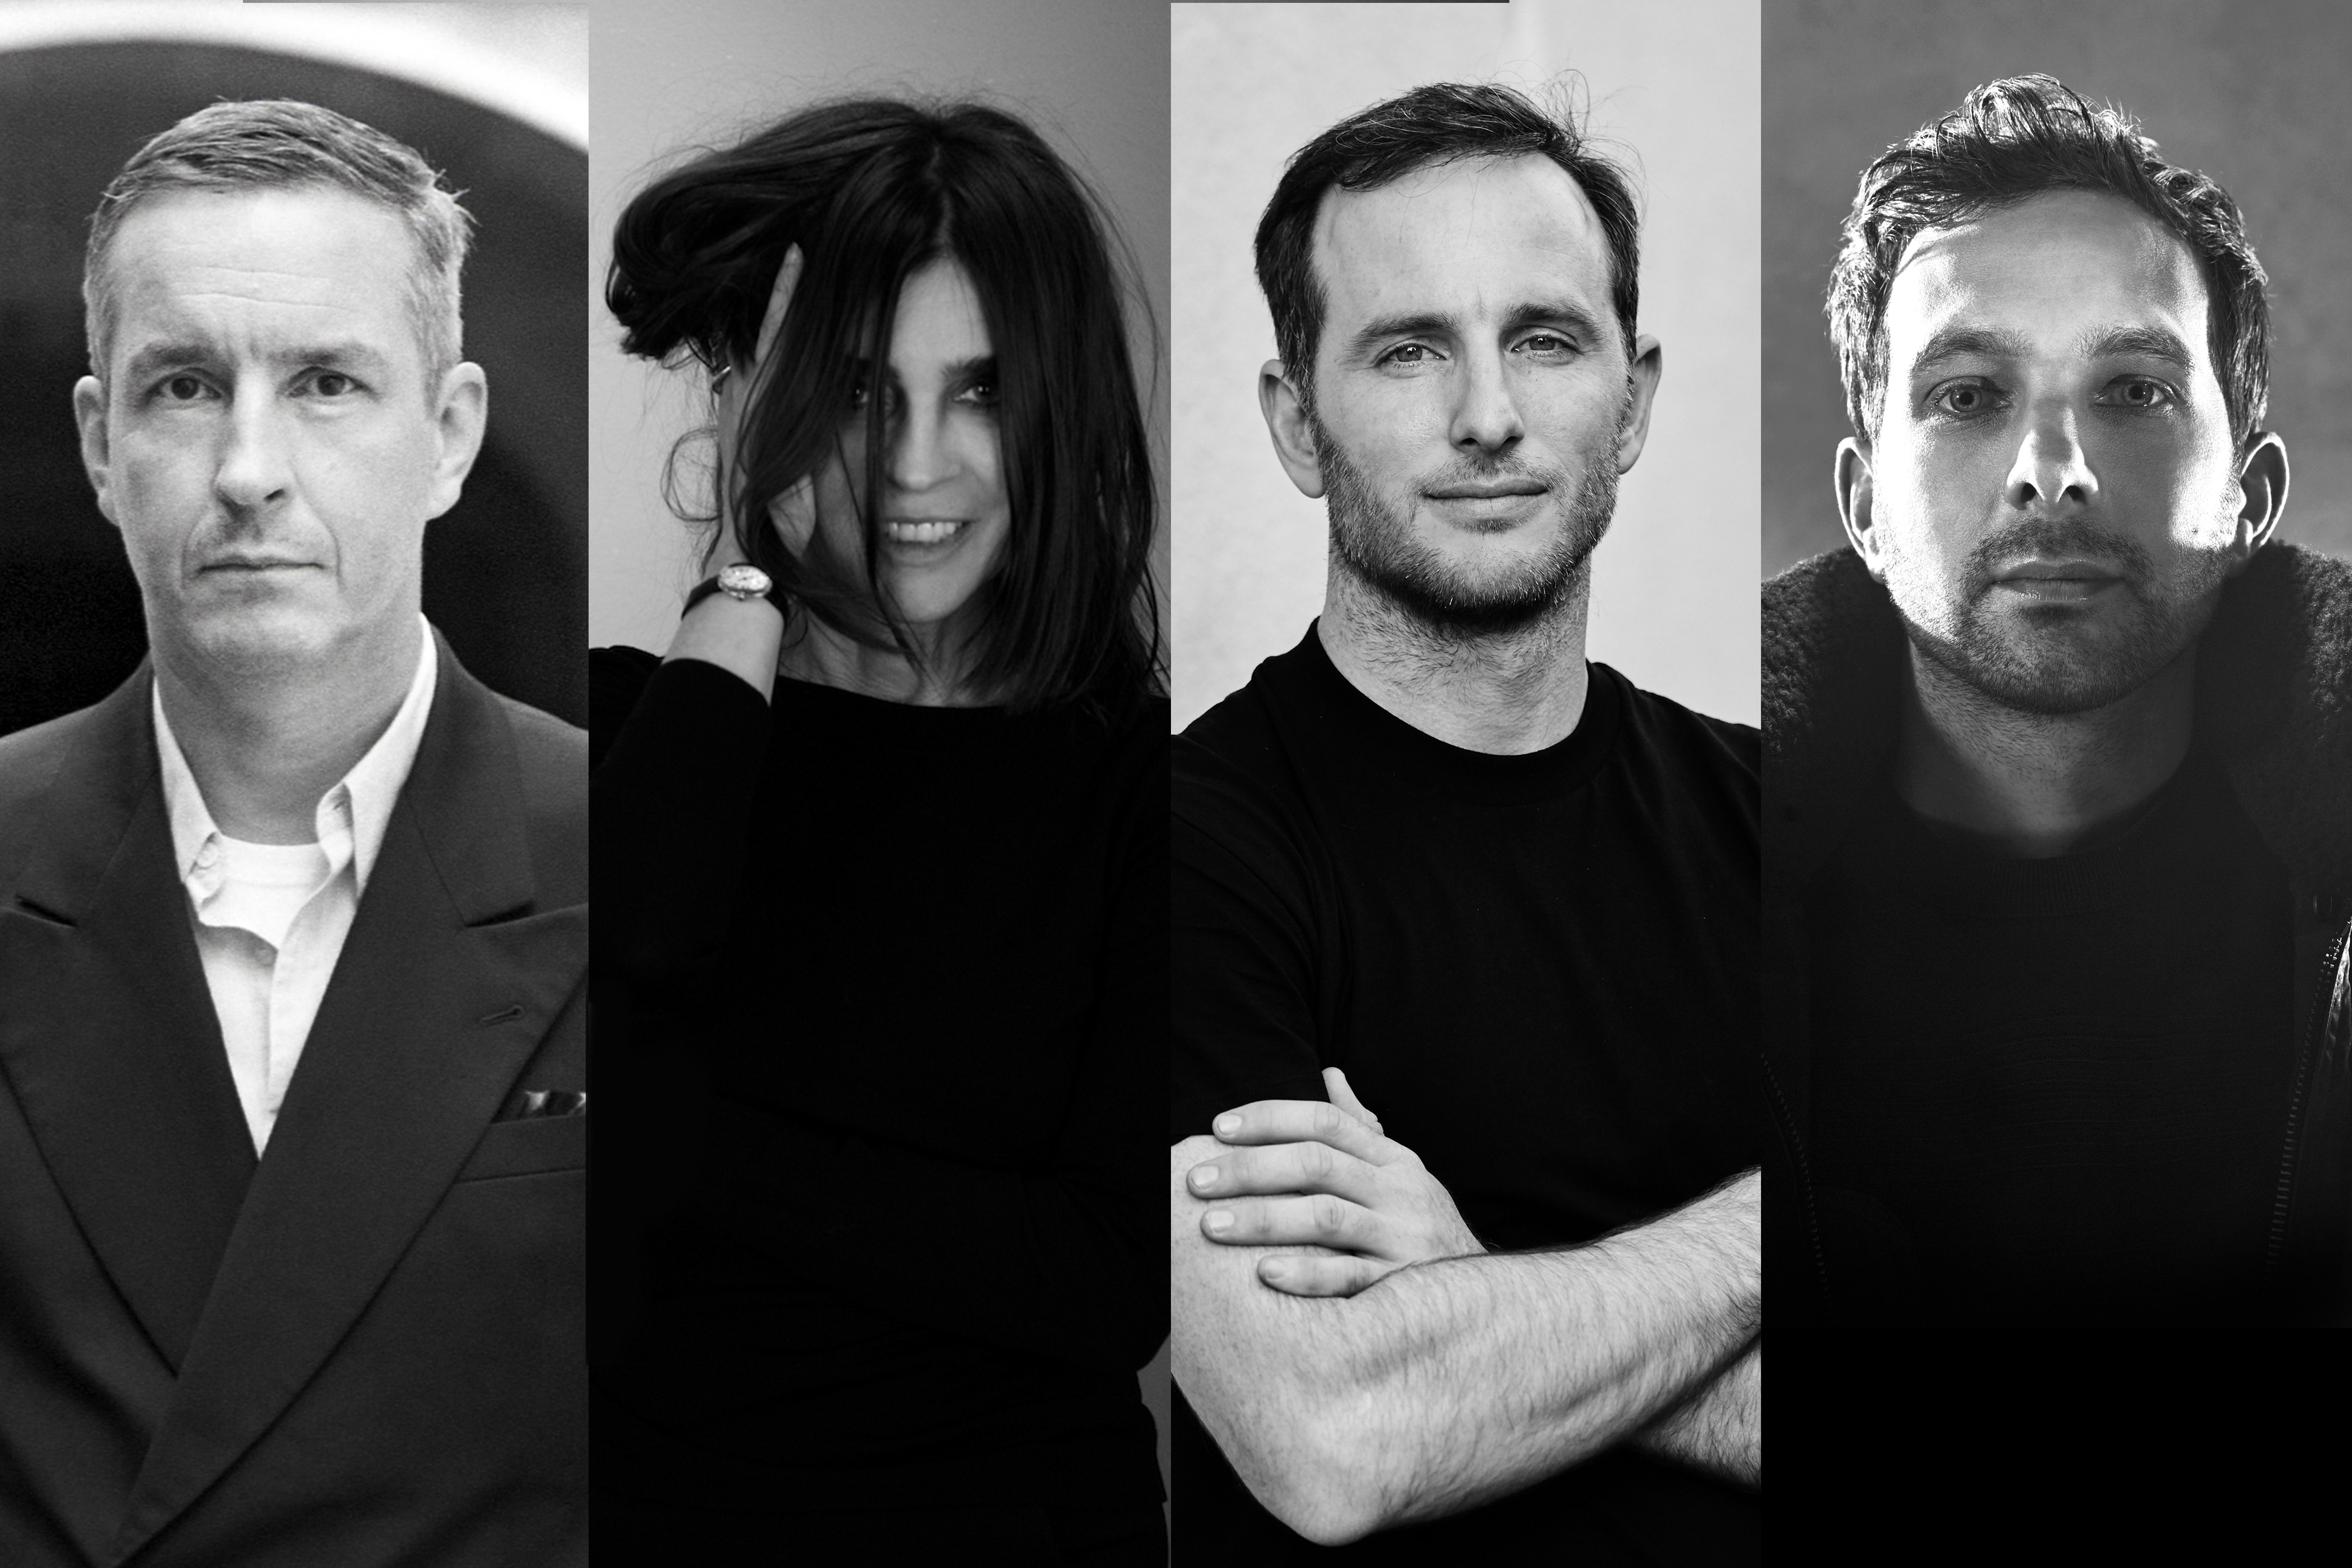 Article cover of Dries Van Noten, Carine Roitfeld, Joe Gebbia and Dynamo to Speak at VOICES 2017